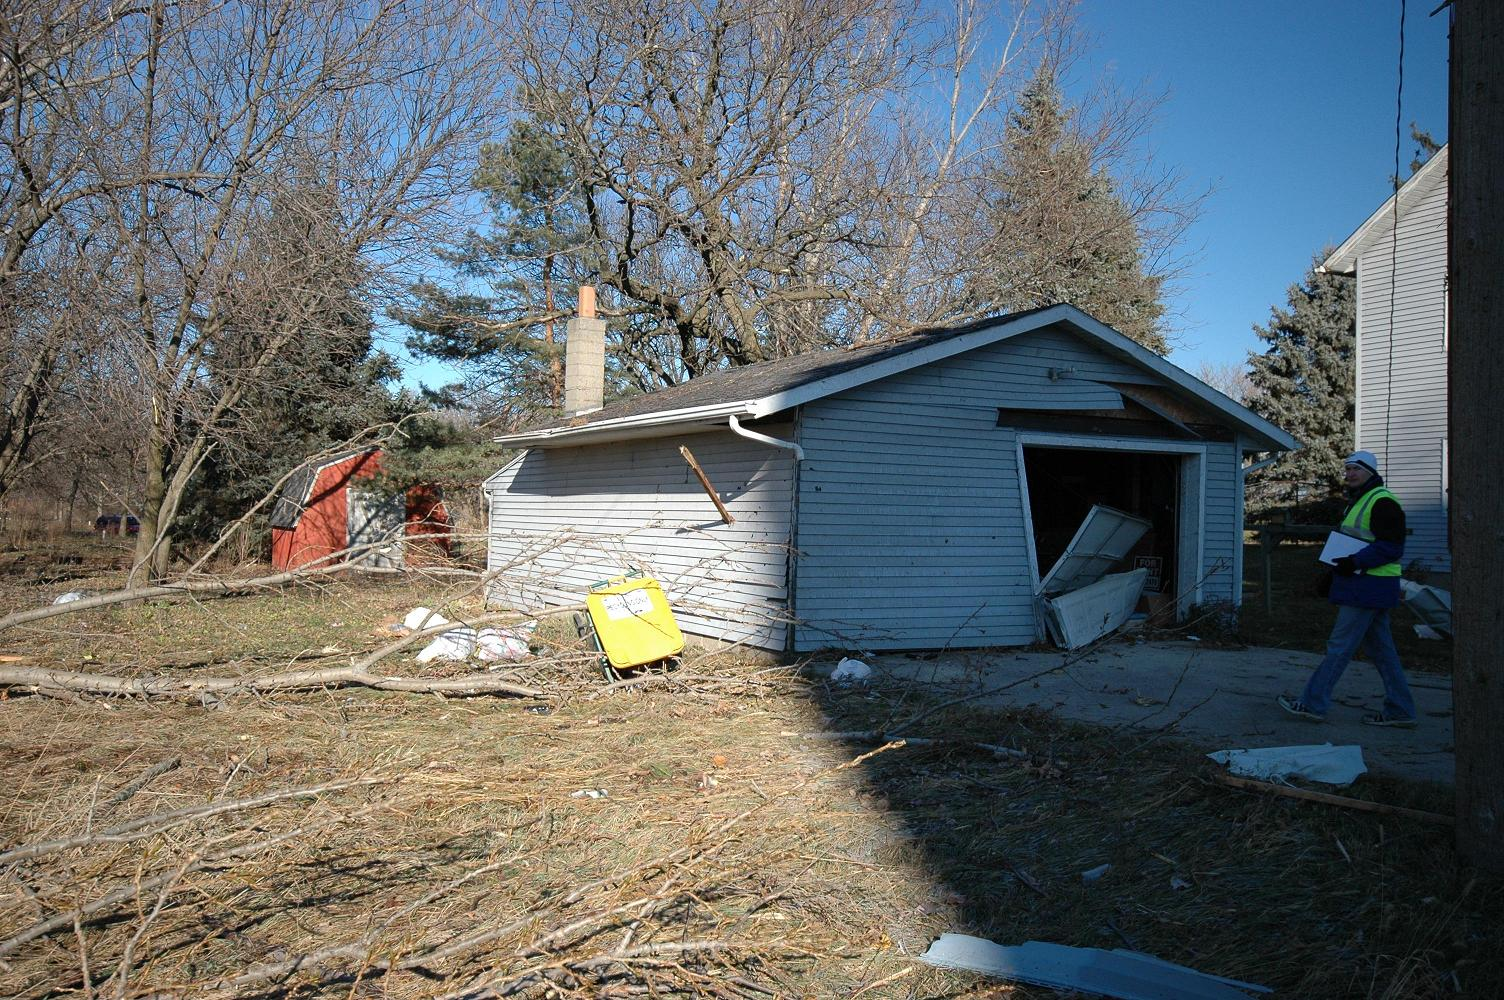 Garage damage with 2x4 thrown into side (Caledonia)